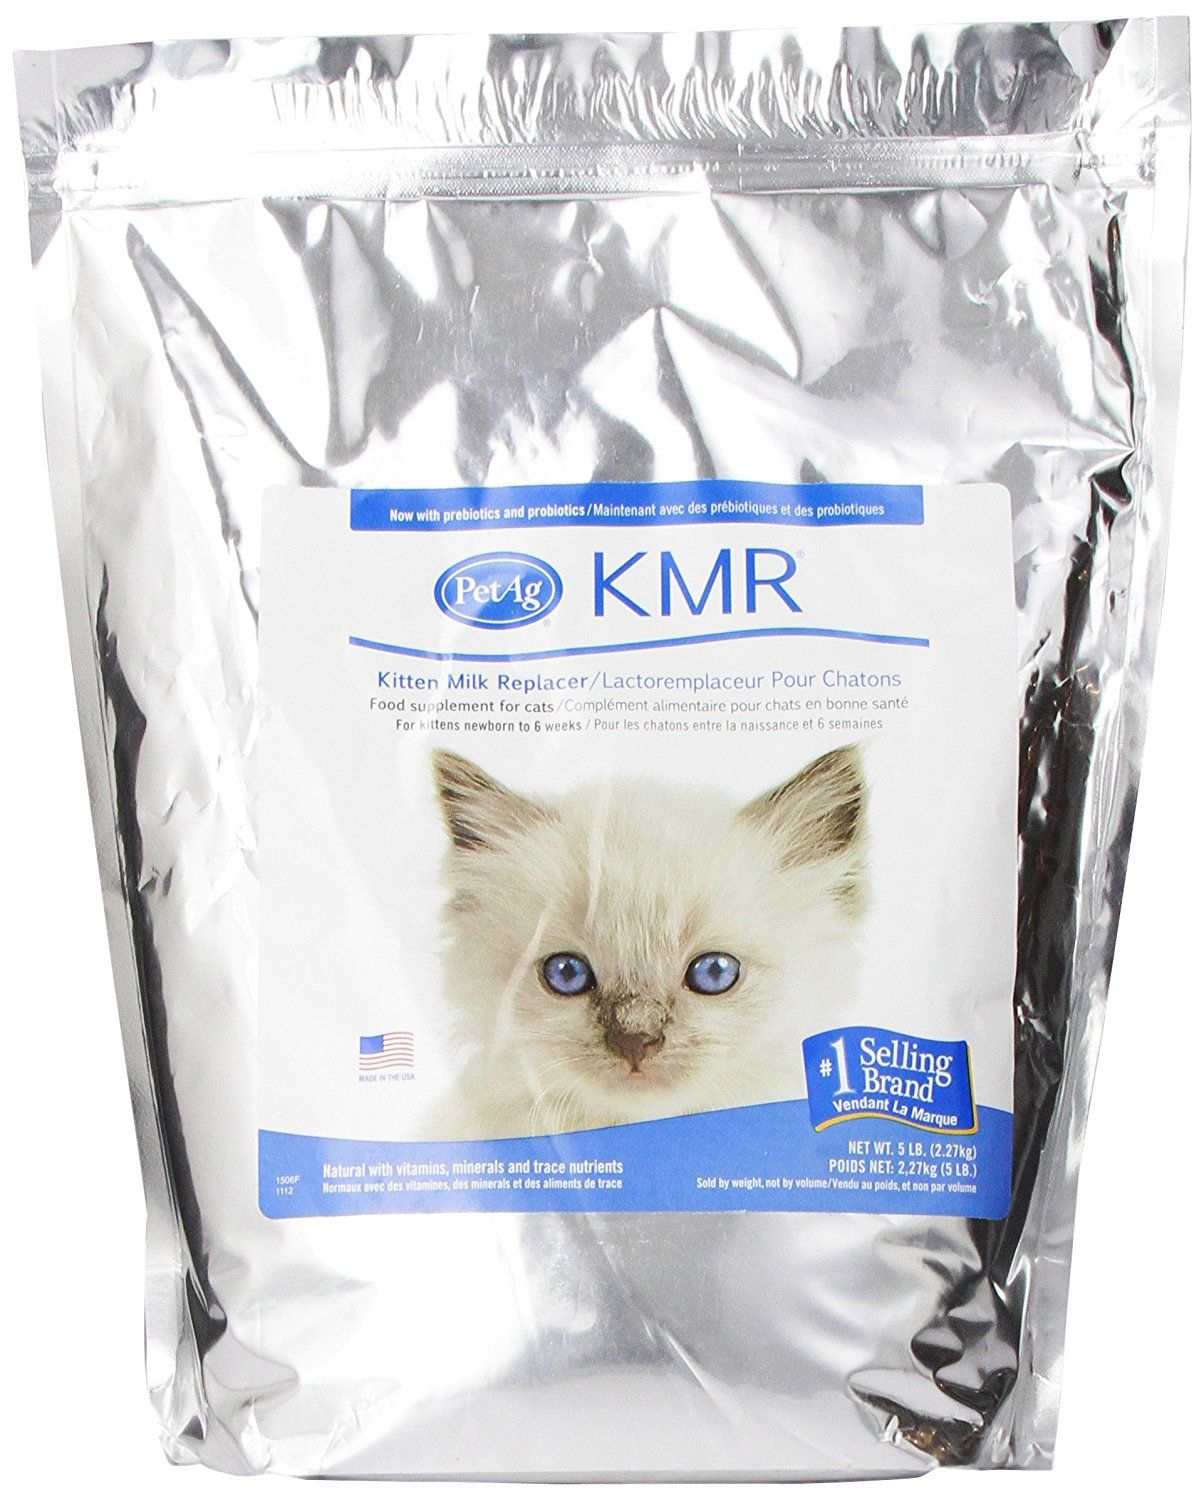 Kmr Kitten Milk Replacer Read More At The Image Link Pets Cat Supplement Cat Food Coupons Cat Food Reviews